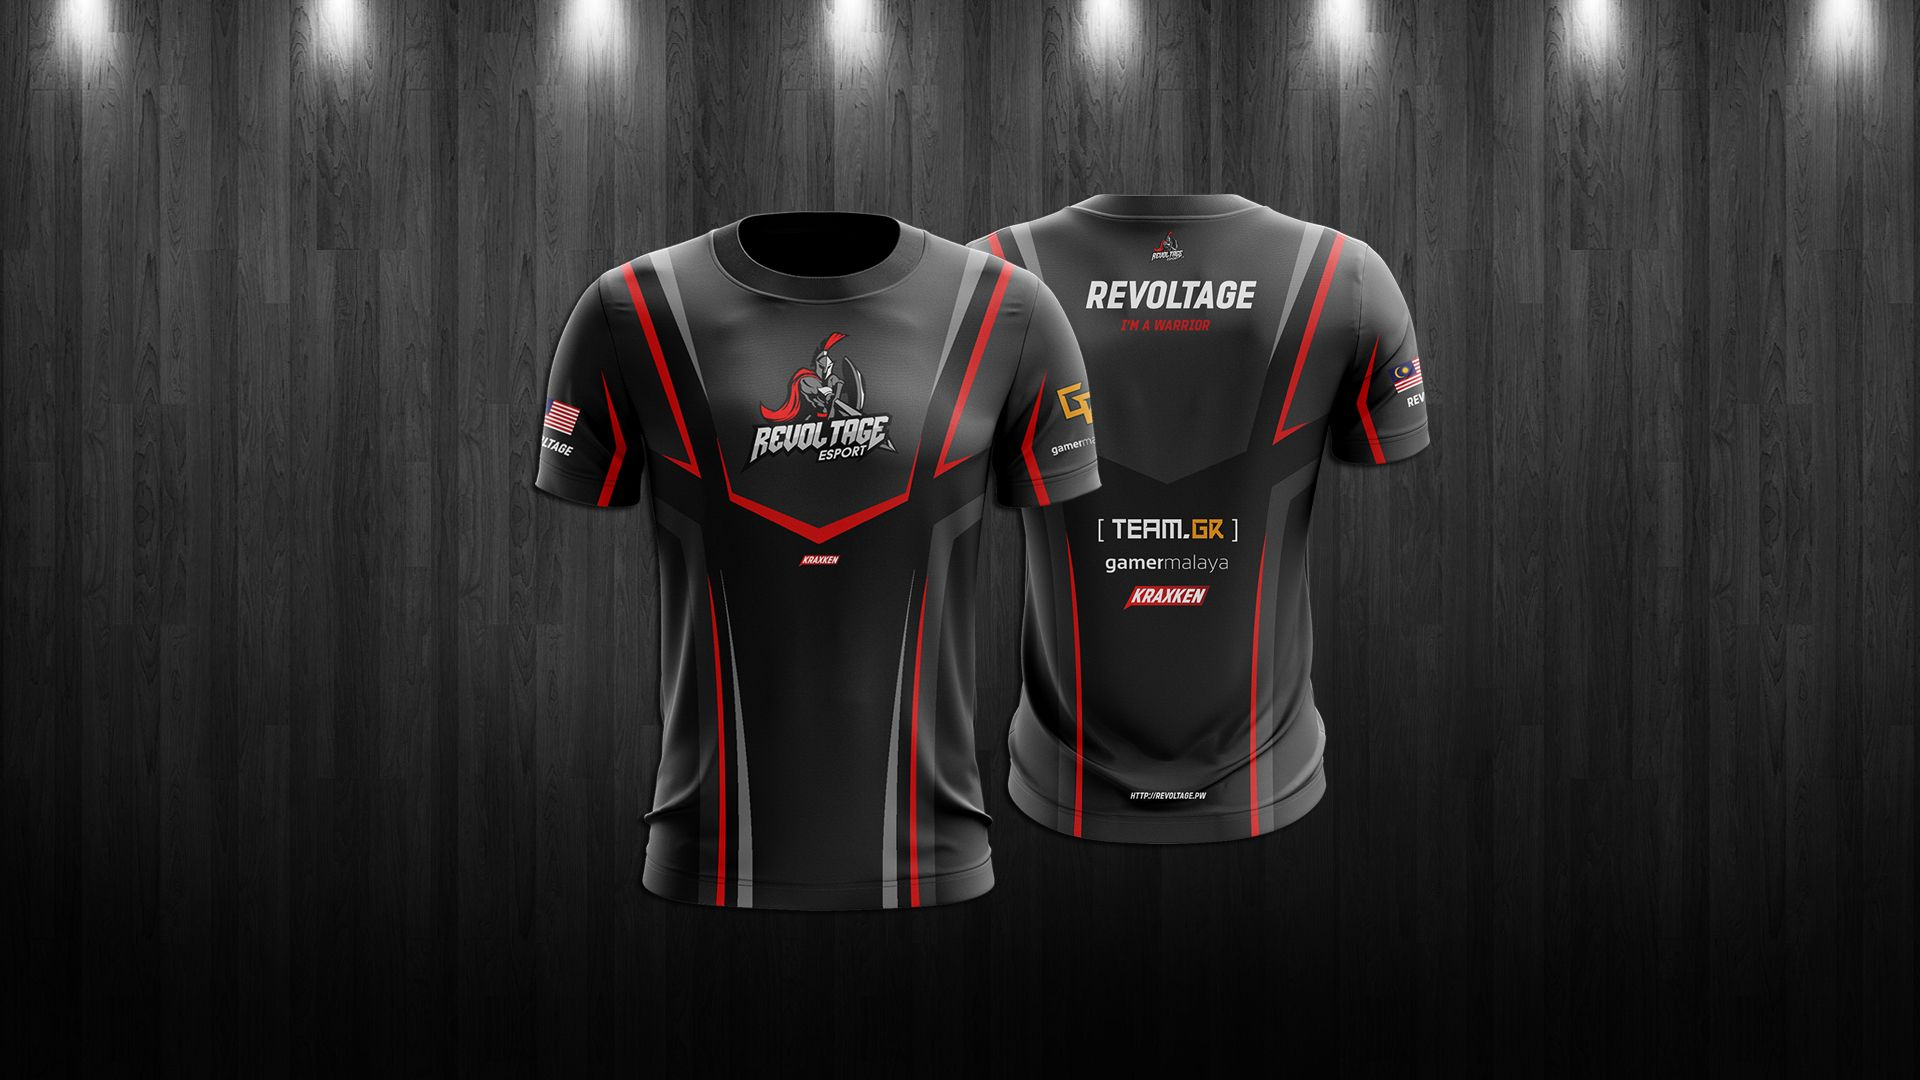 Download 23 Gaming Jersey Ideas Jersey Design Jersey Sports Jersey Design